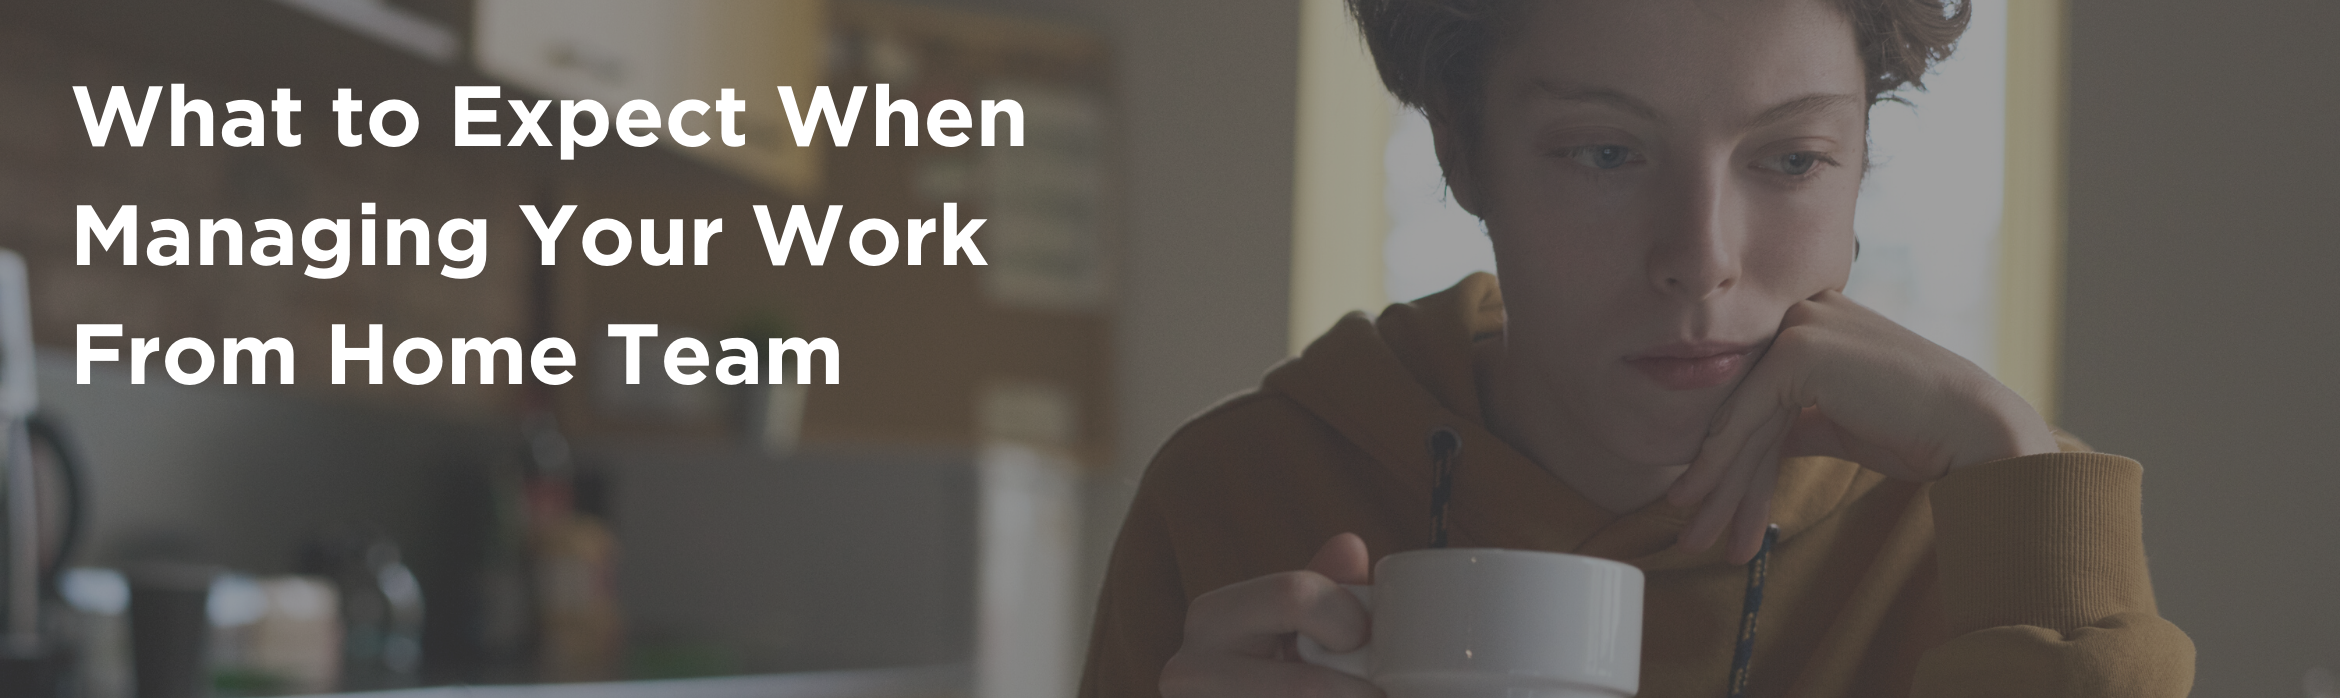 What to Expect When Managing Your Work From Home Team